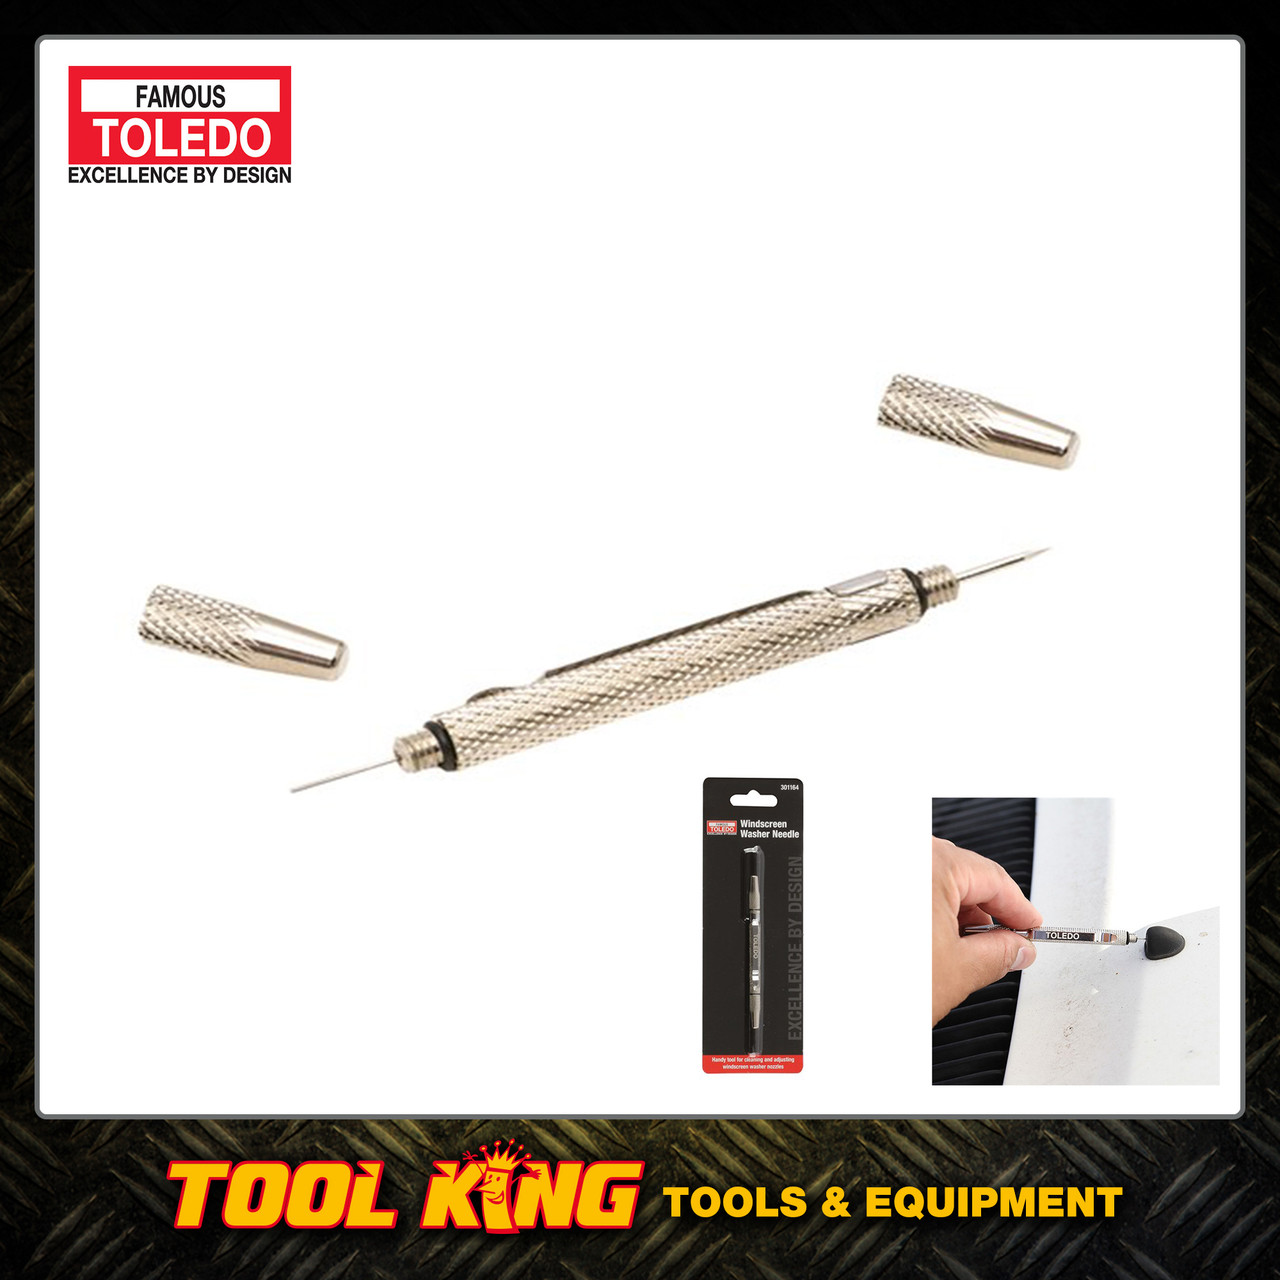 Windscreen wiper jet tool TOLEDO professional